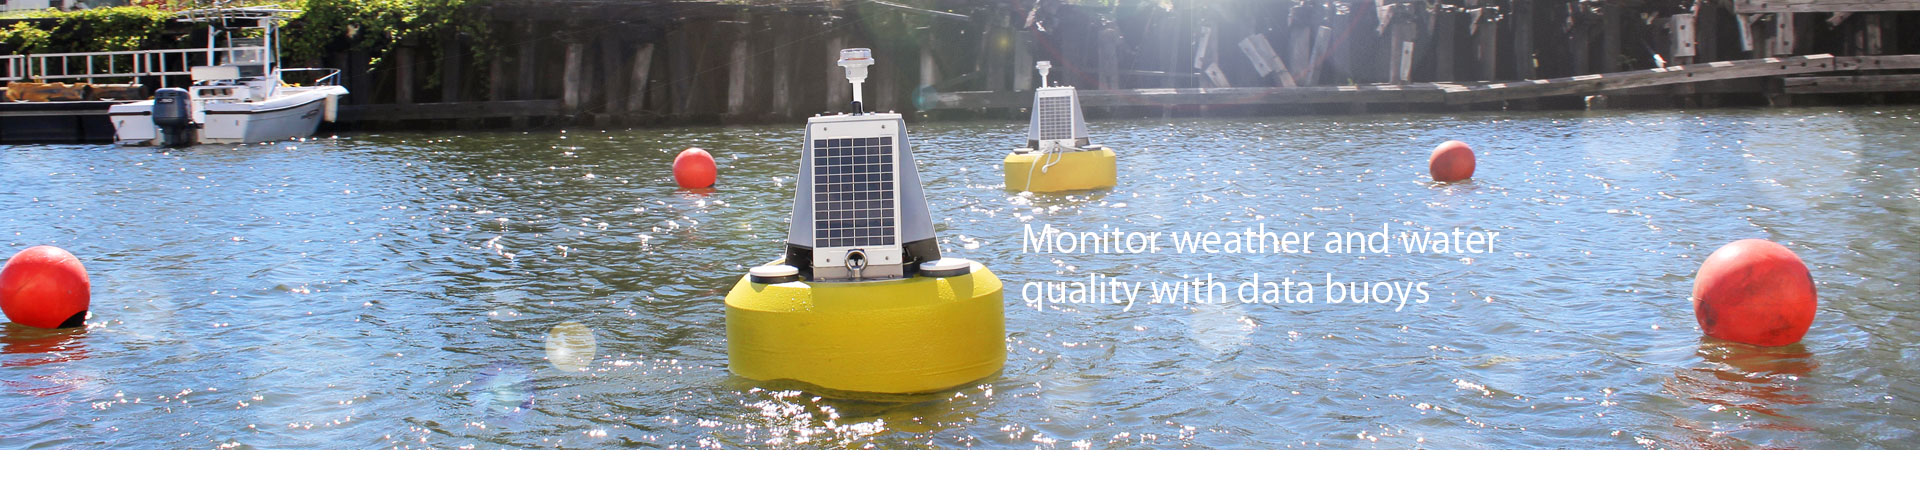 Monitor weather and water quality with data buoys